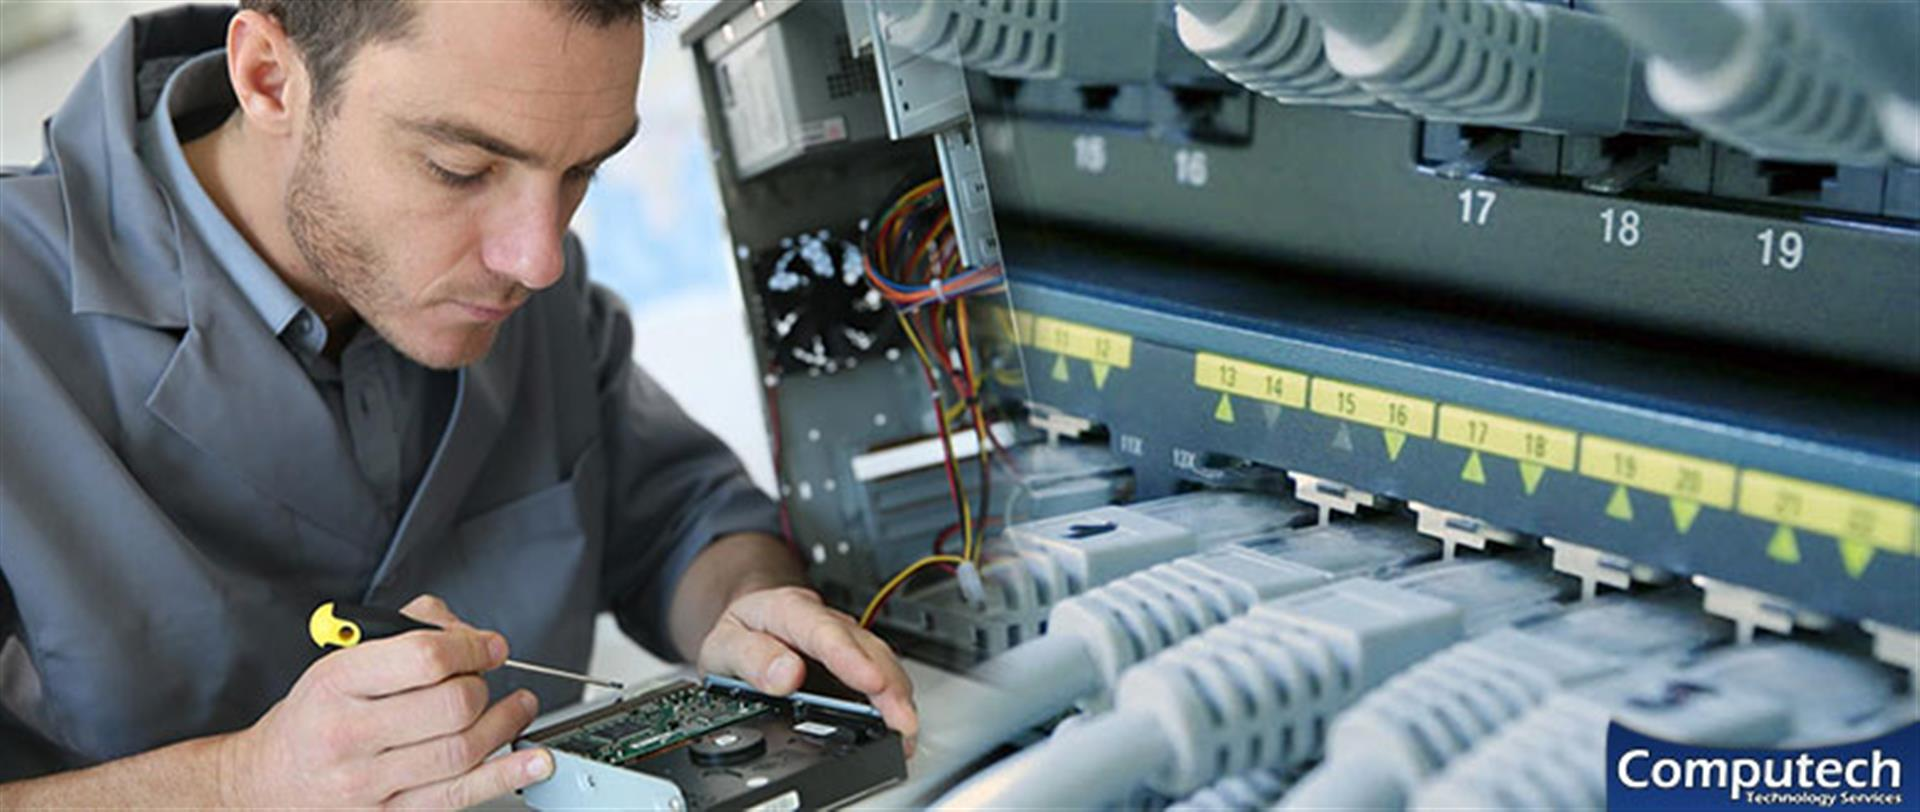 Pelham Georgia On Site Computer & Printer Repair, Networking, Voice & Data Cabling Contractors